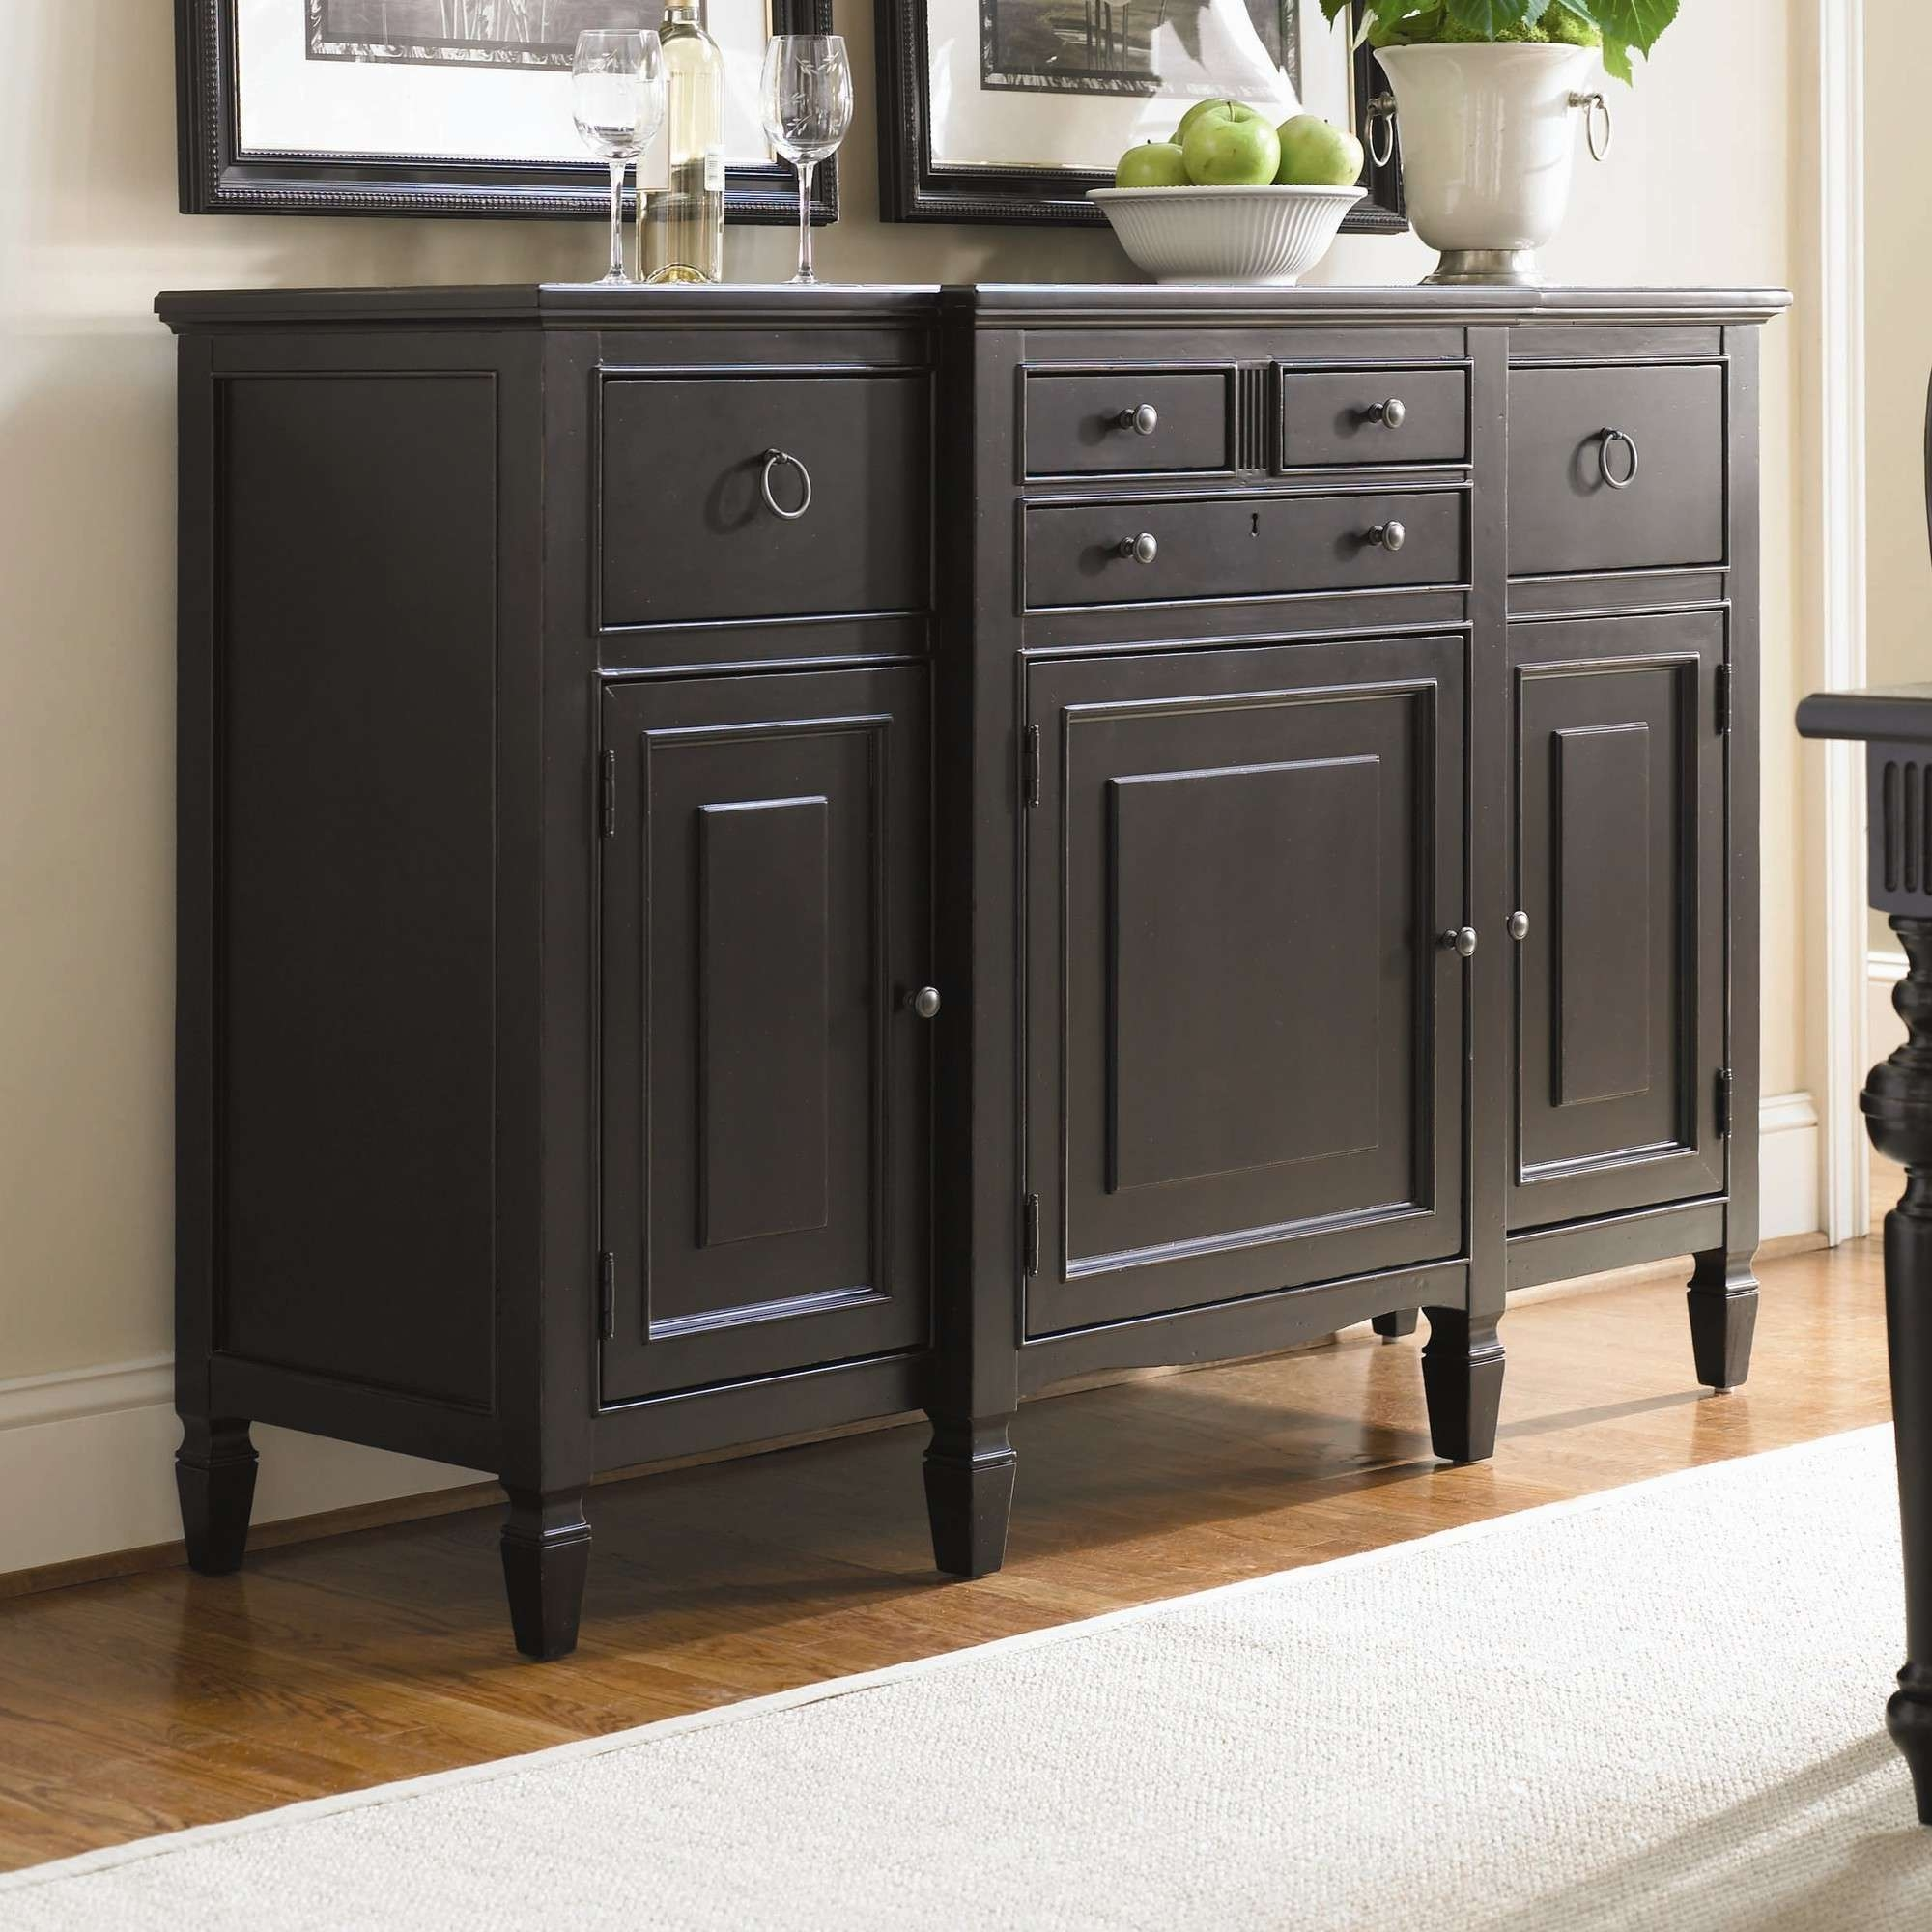 Furniture: White Sideboard Buffet With Two Drawers And Glass Door Regarding Glass Door Buffet Sideboards (View 14 of 20)